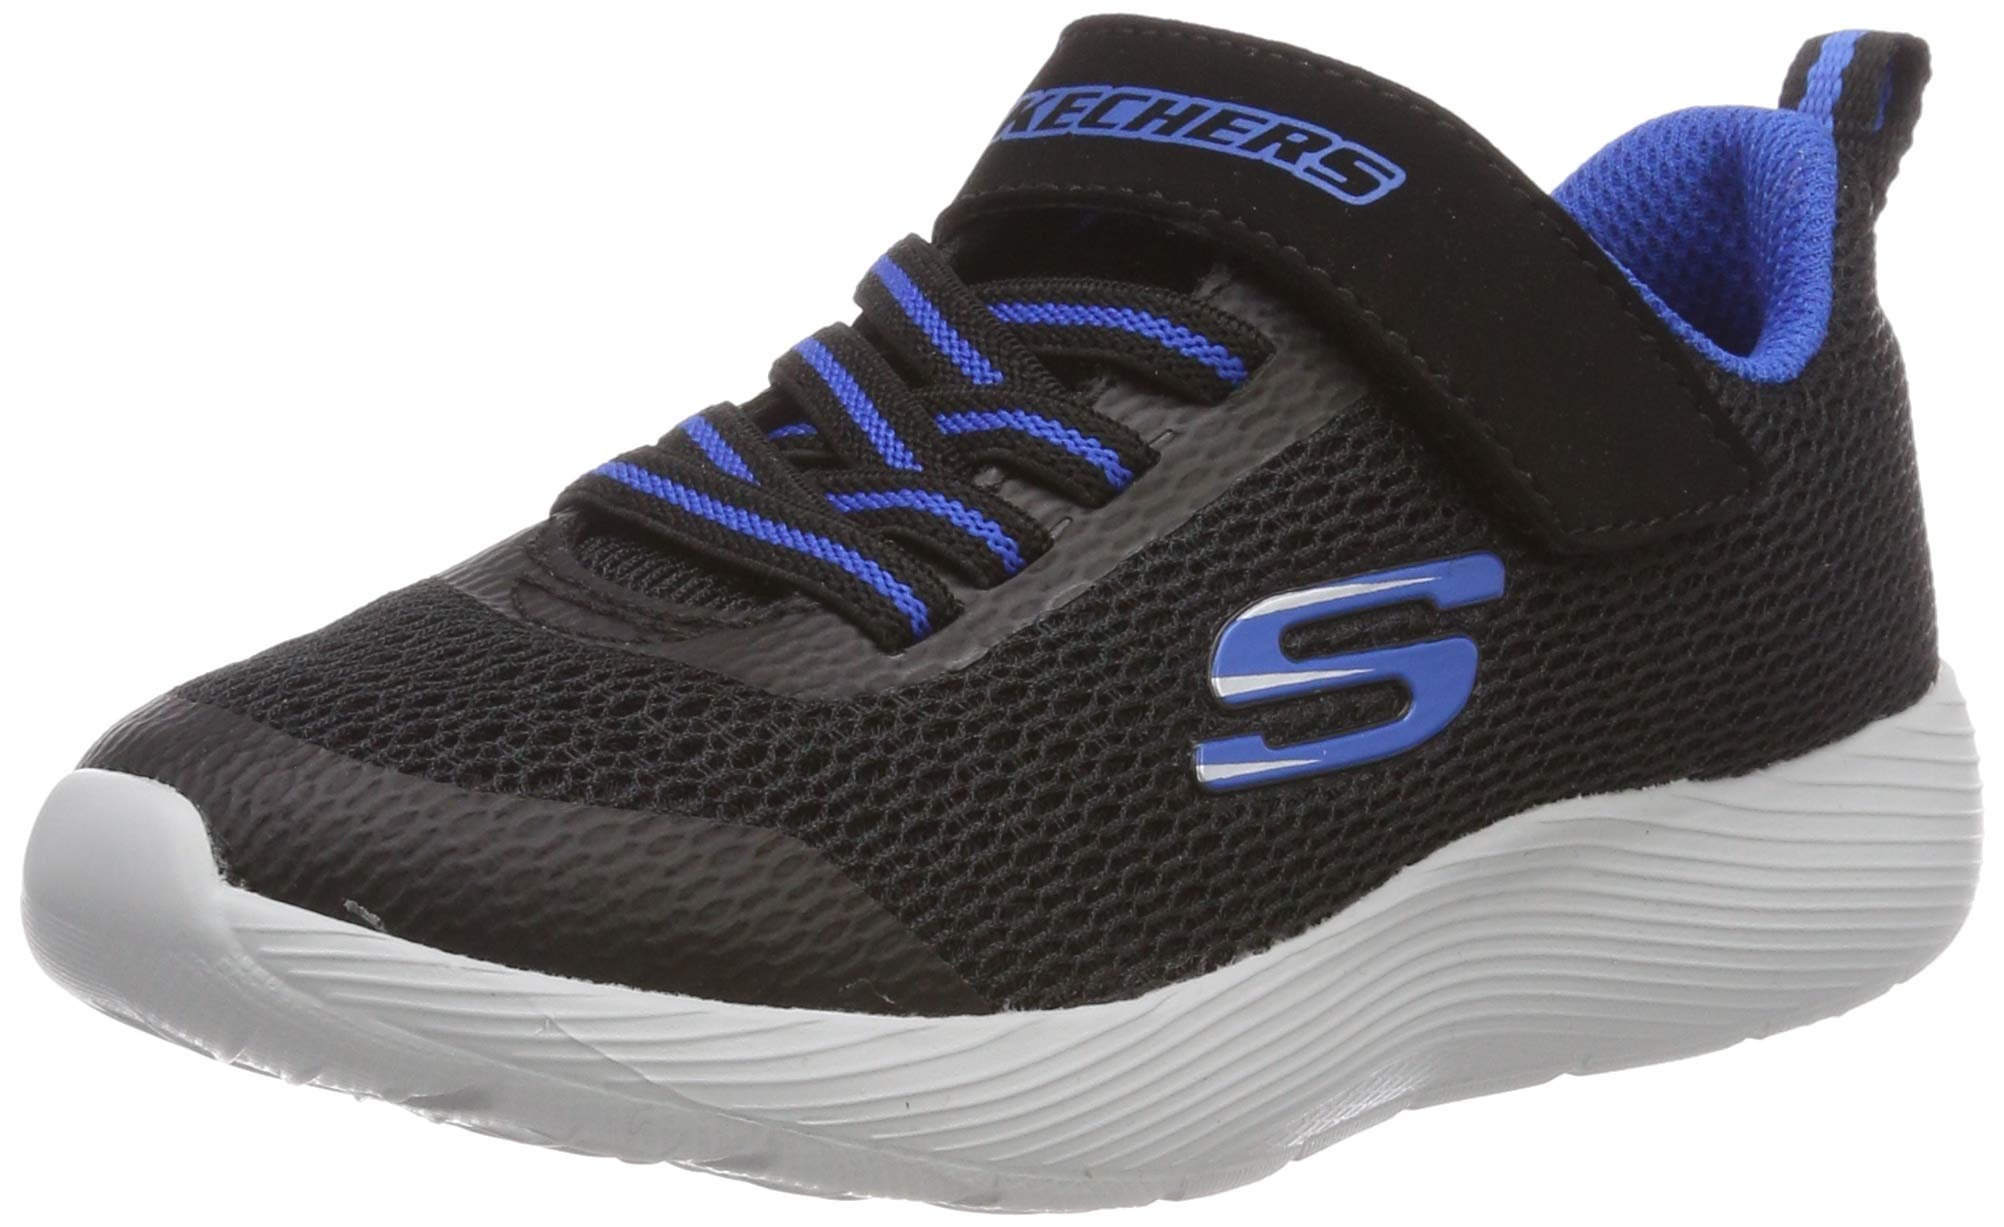 Skechers Kids Boys' DYNA-LITE Sneaker, Black/Royal, 5.5 Medium US Big Kid